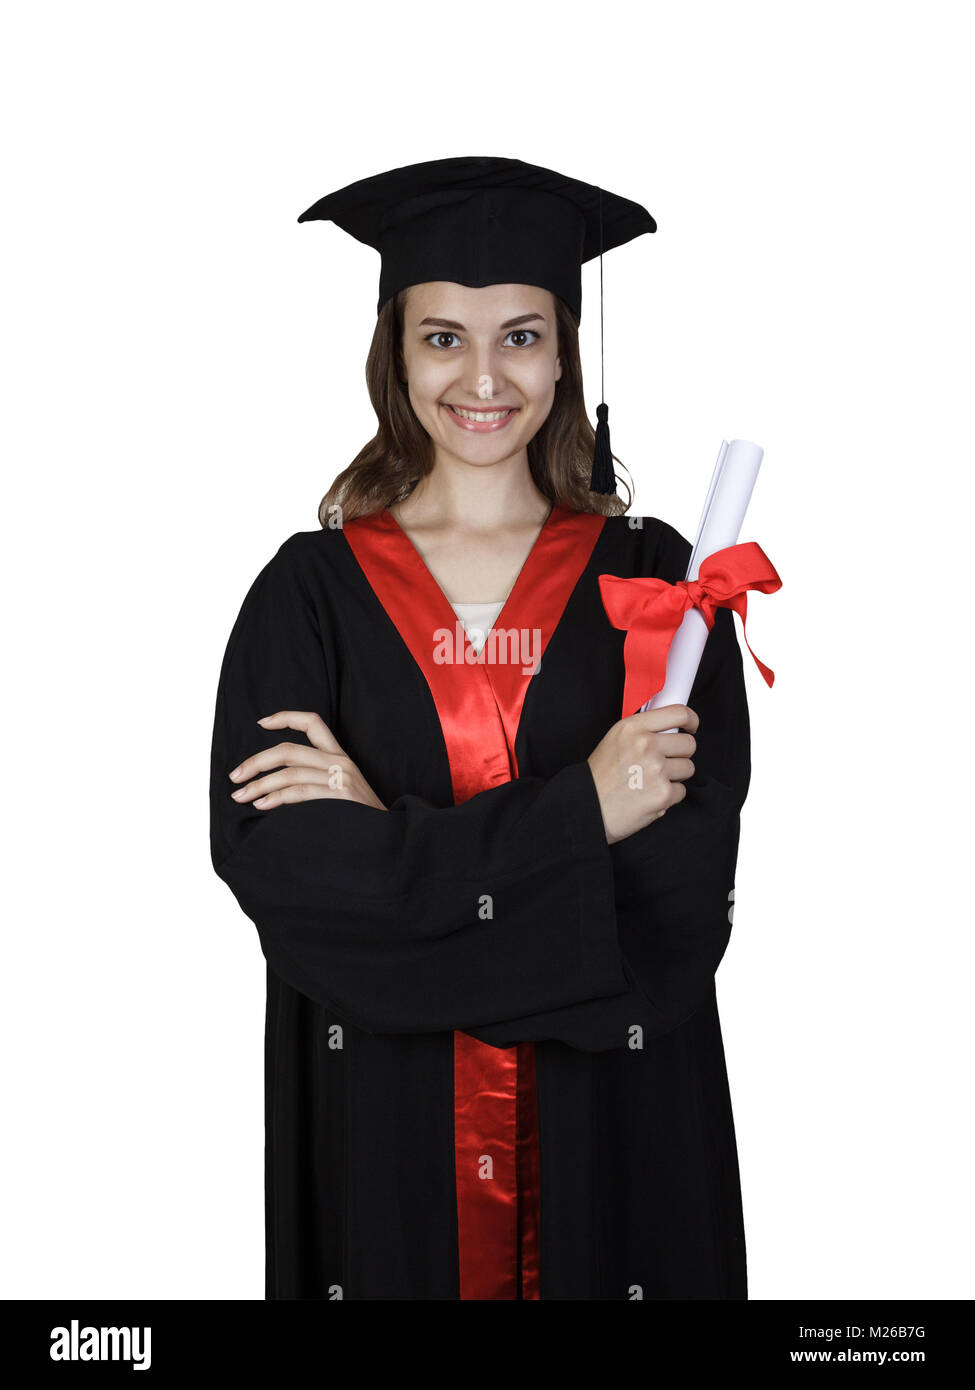 Female student in graduation gown holding books and a diploma isolated on white background. - Stock Image